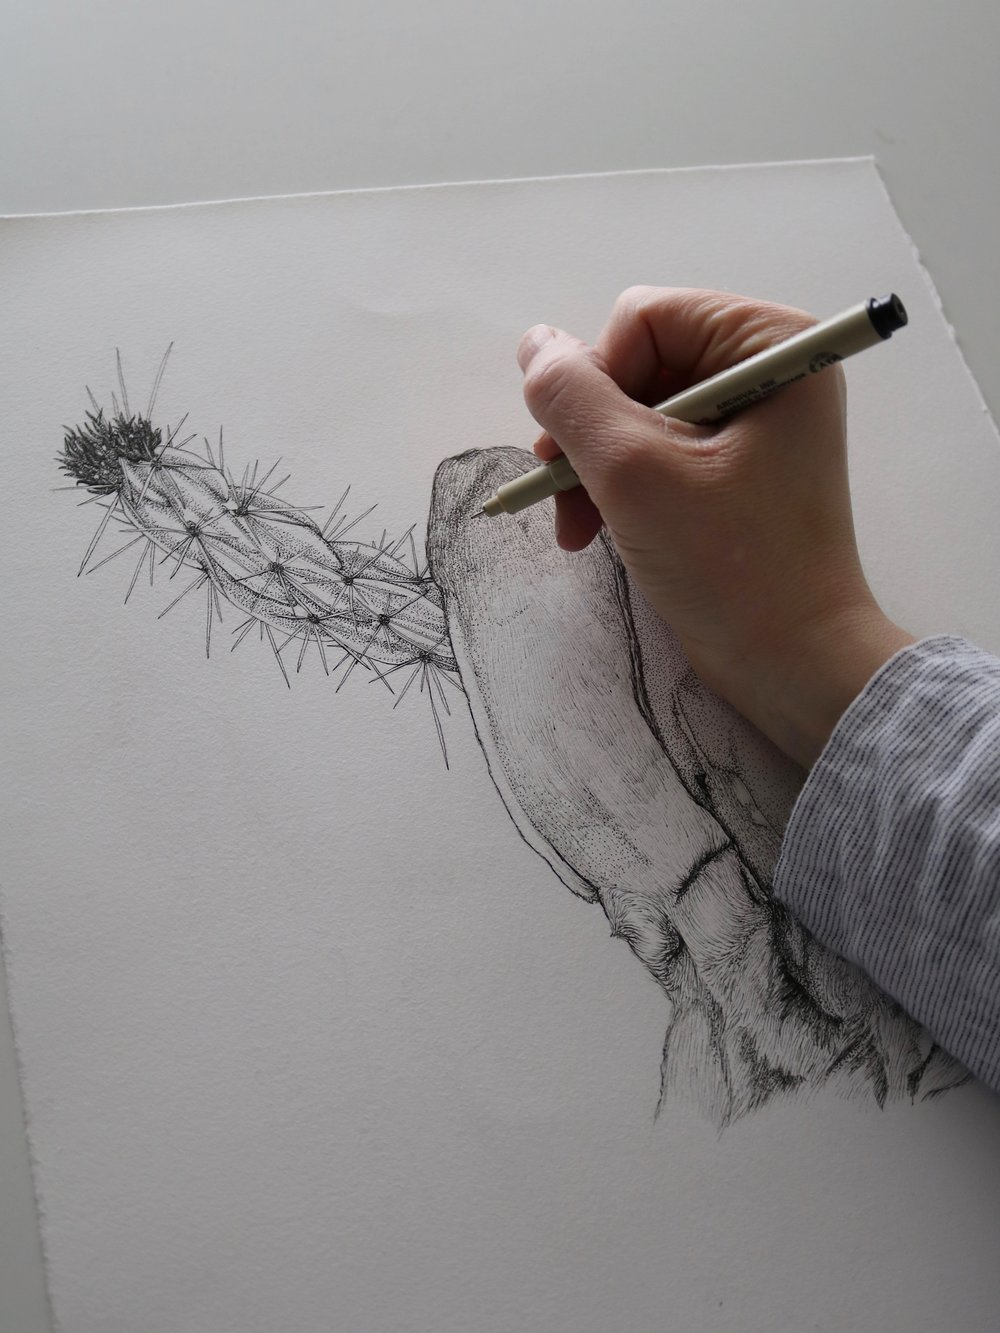 Drawing in process. Image courtesy of the artist.